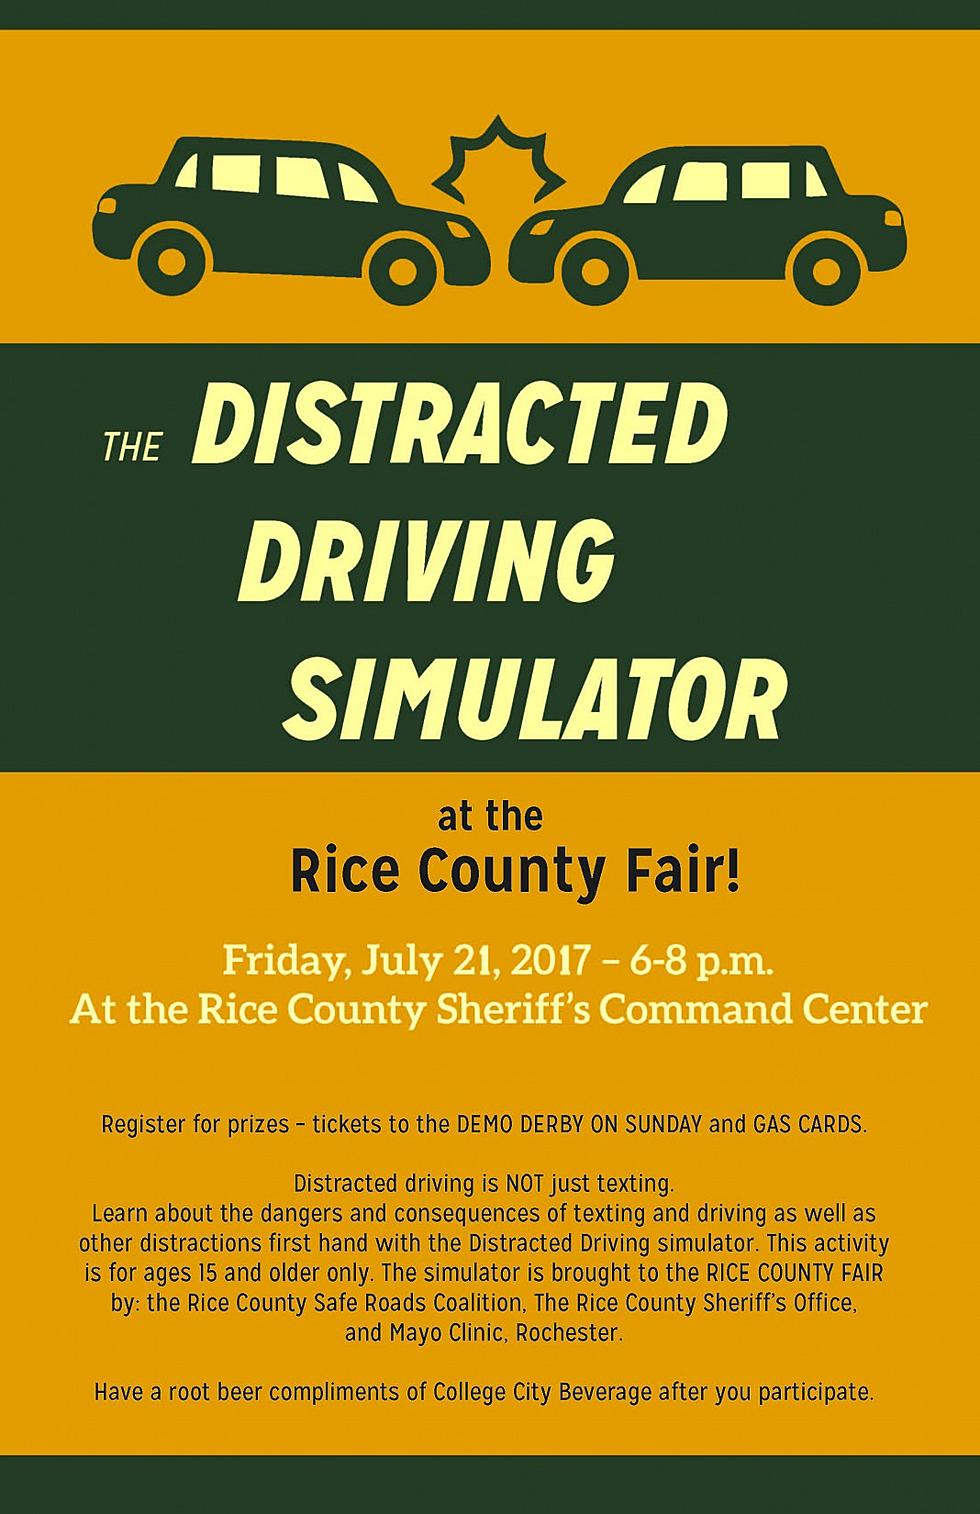 Distracted Driving Simulator to be at Rice County Fair